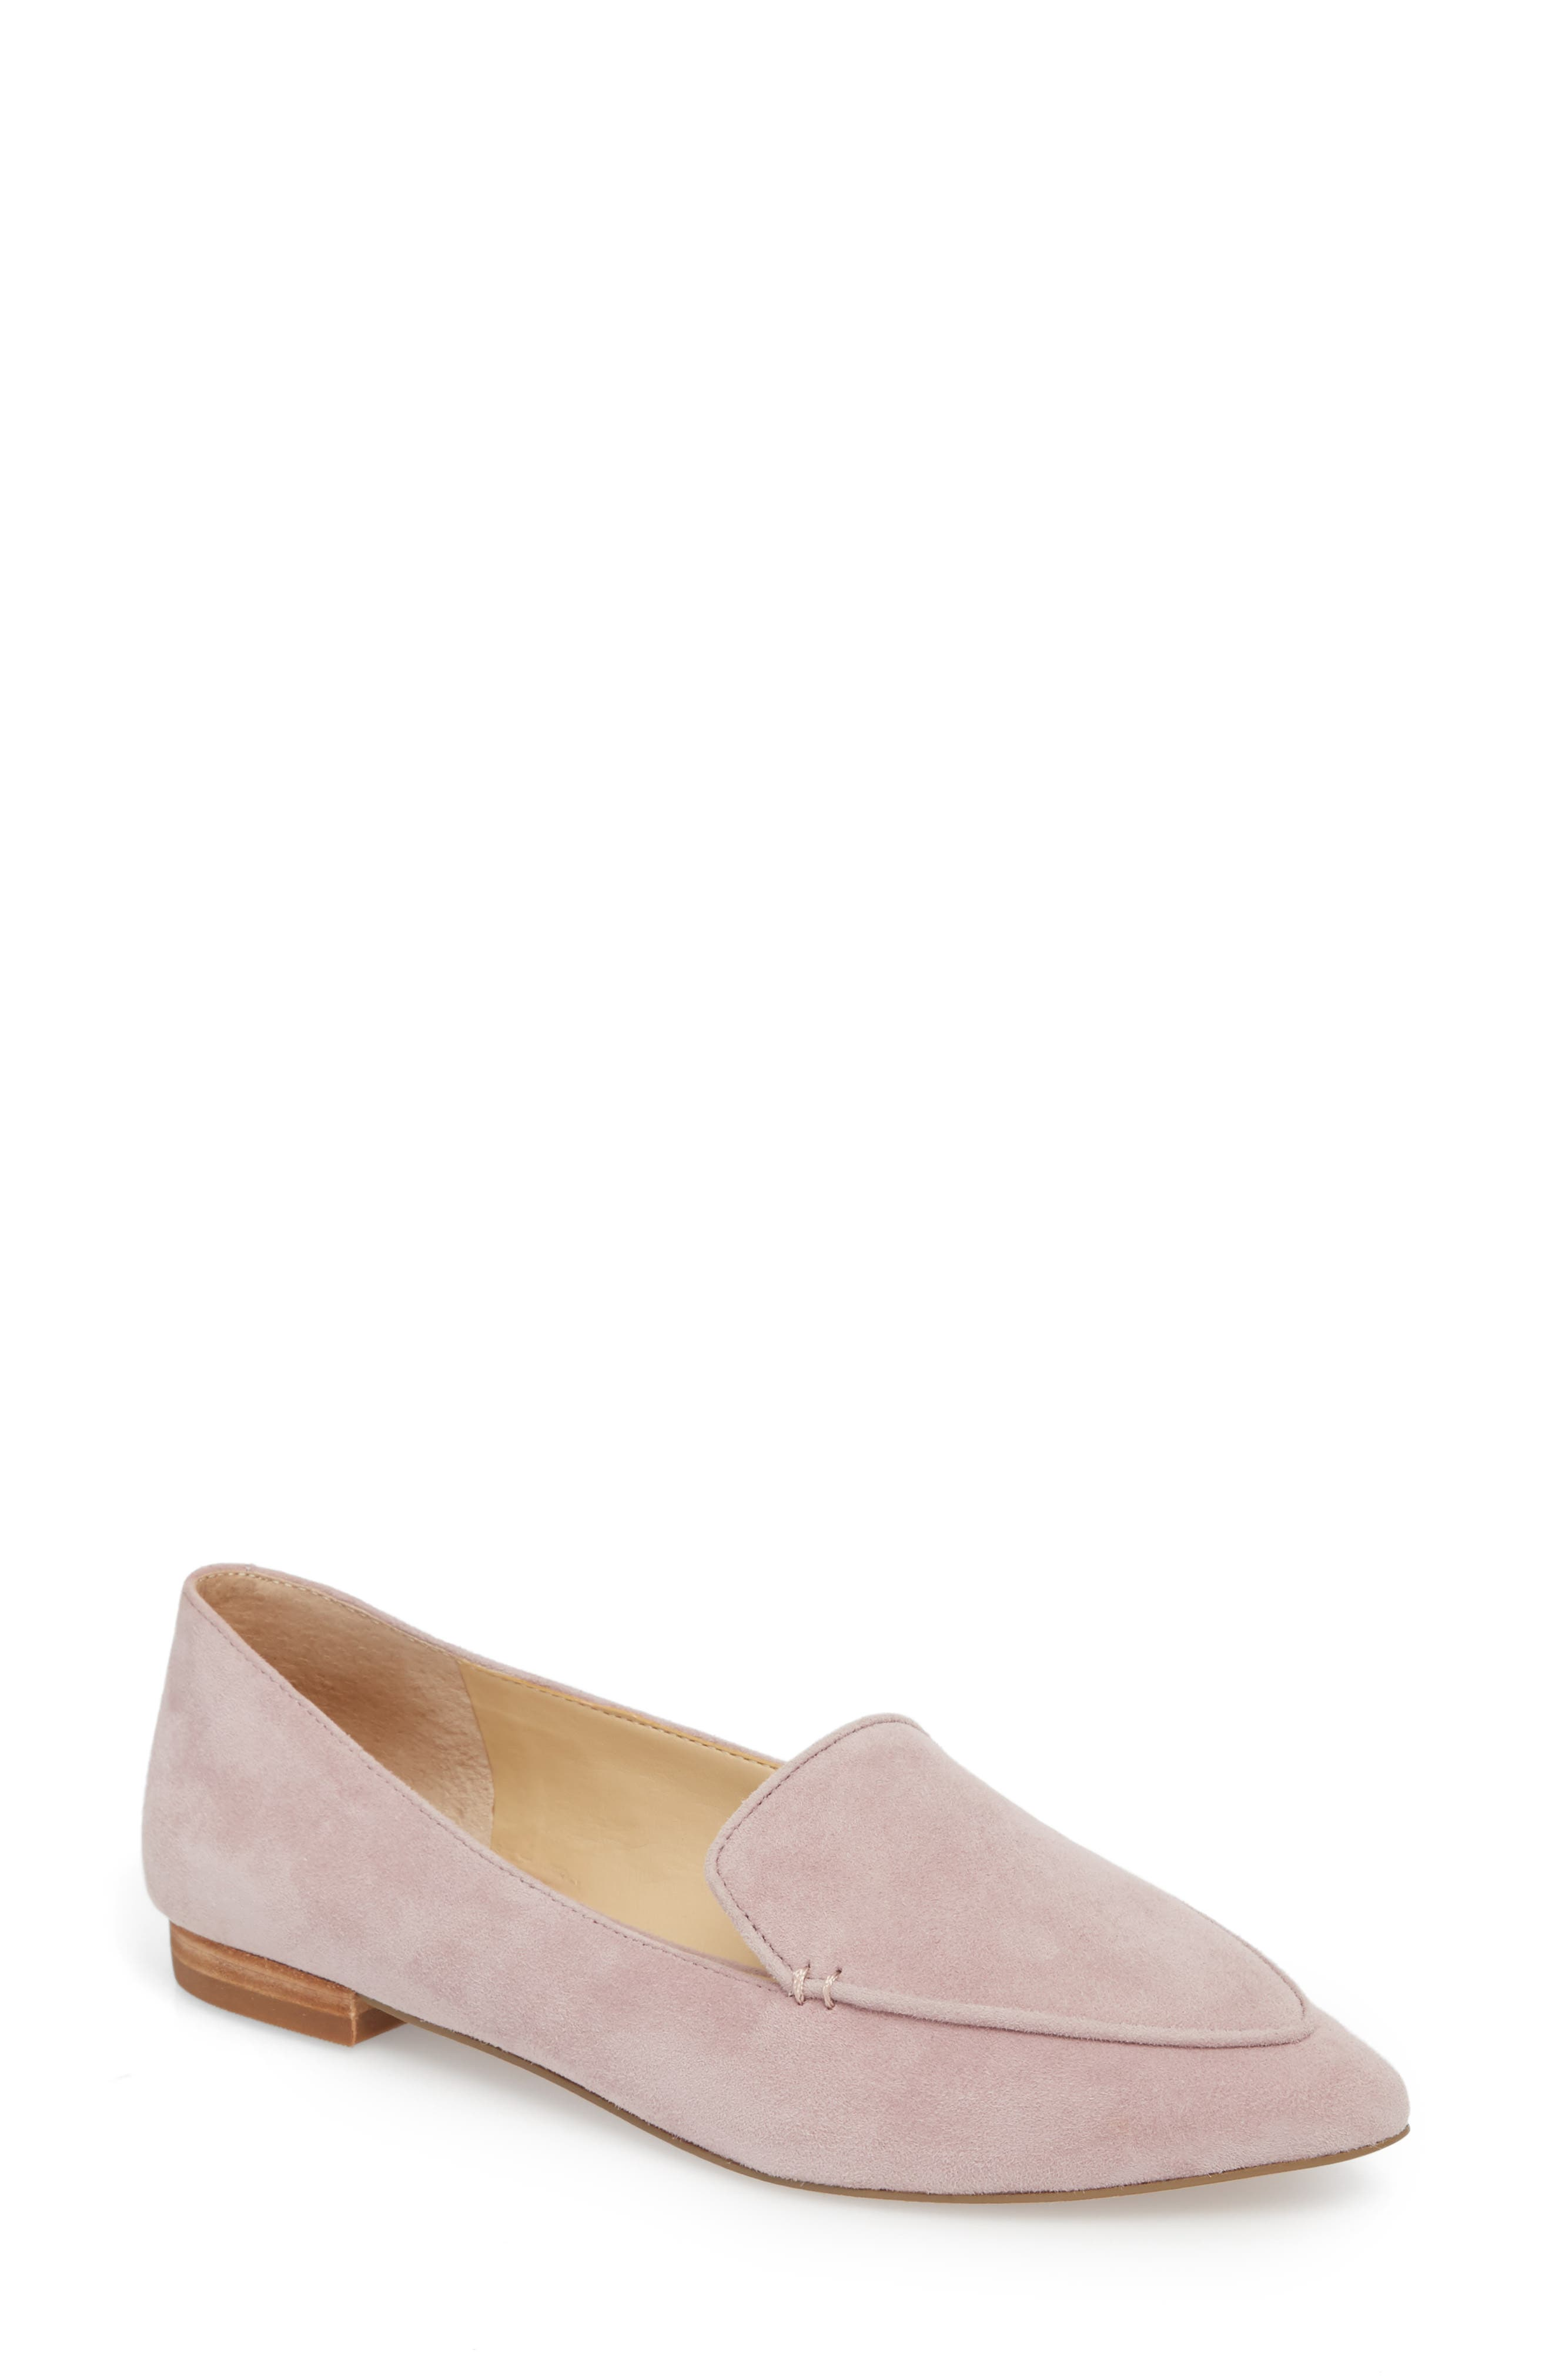 'Cammila' Pointy Toe Loafer,                             Main thumbnail 3, color,